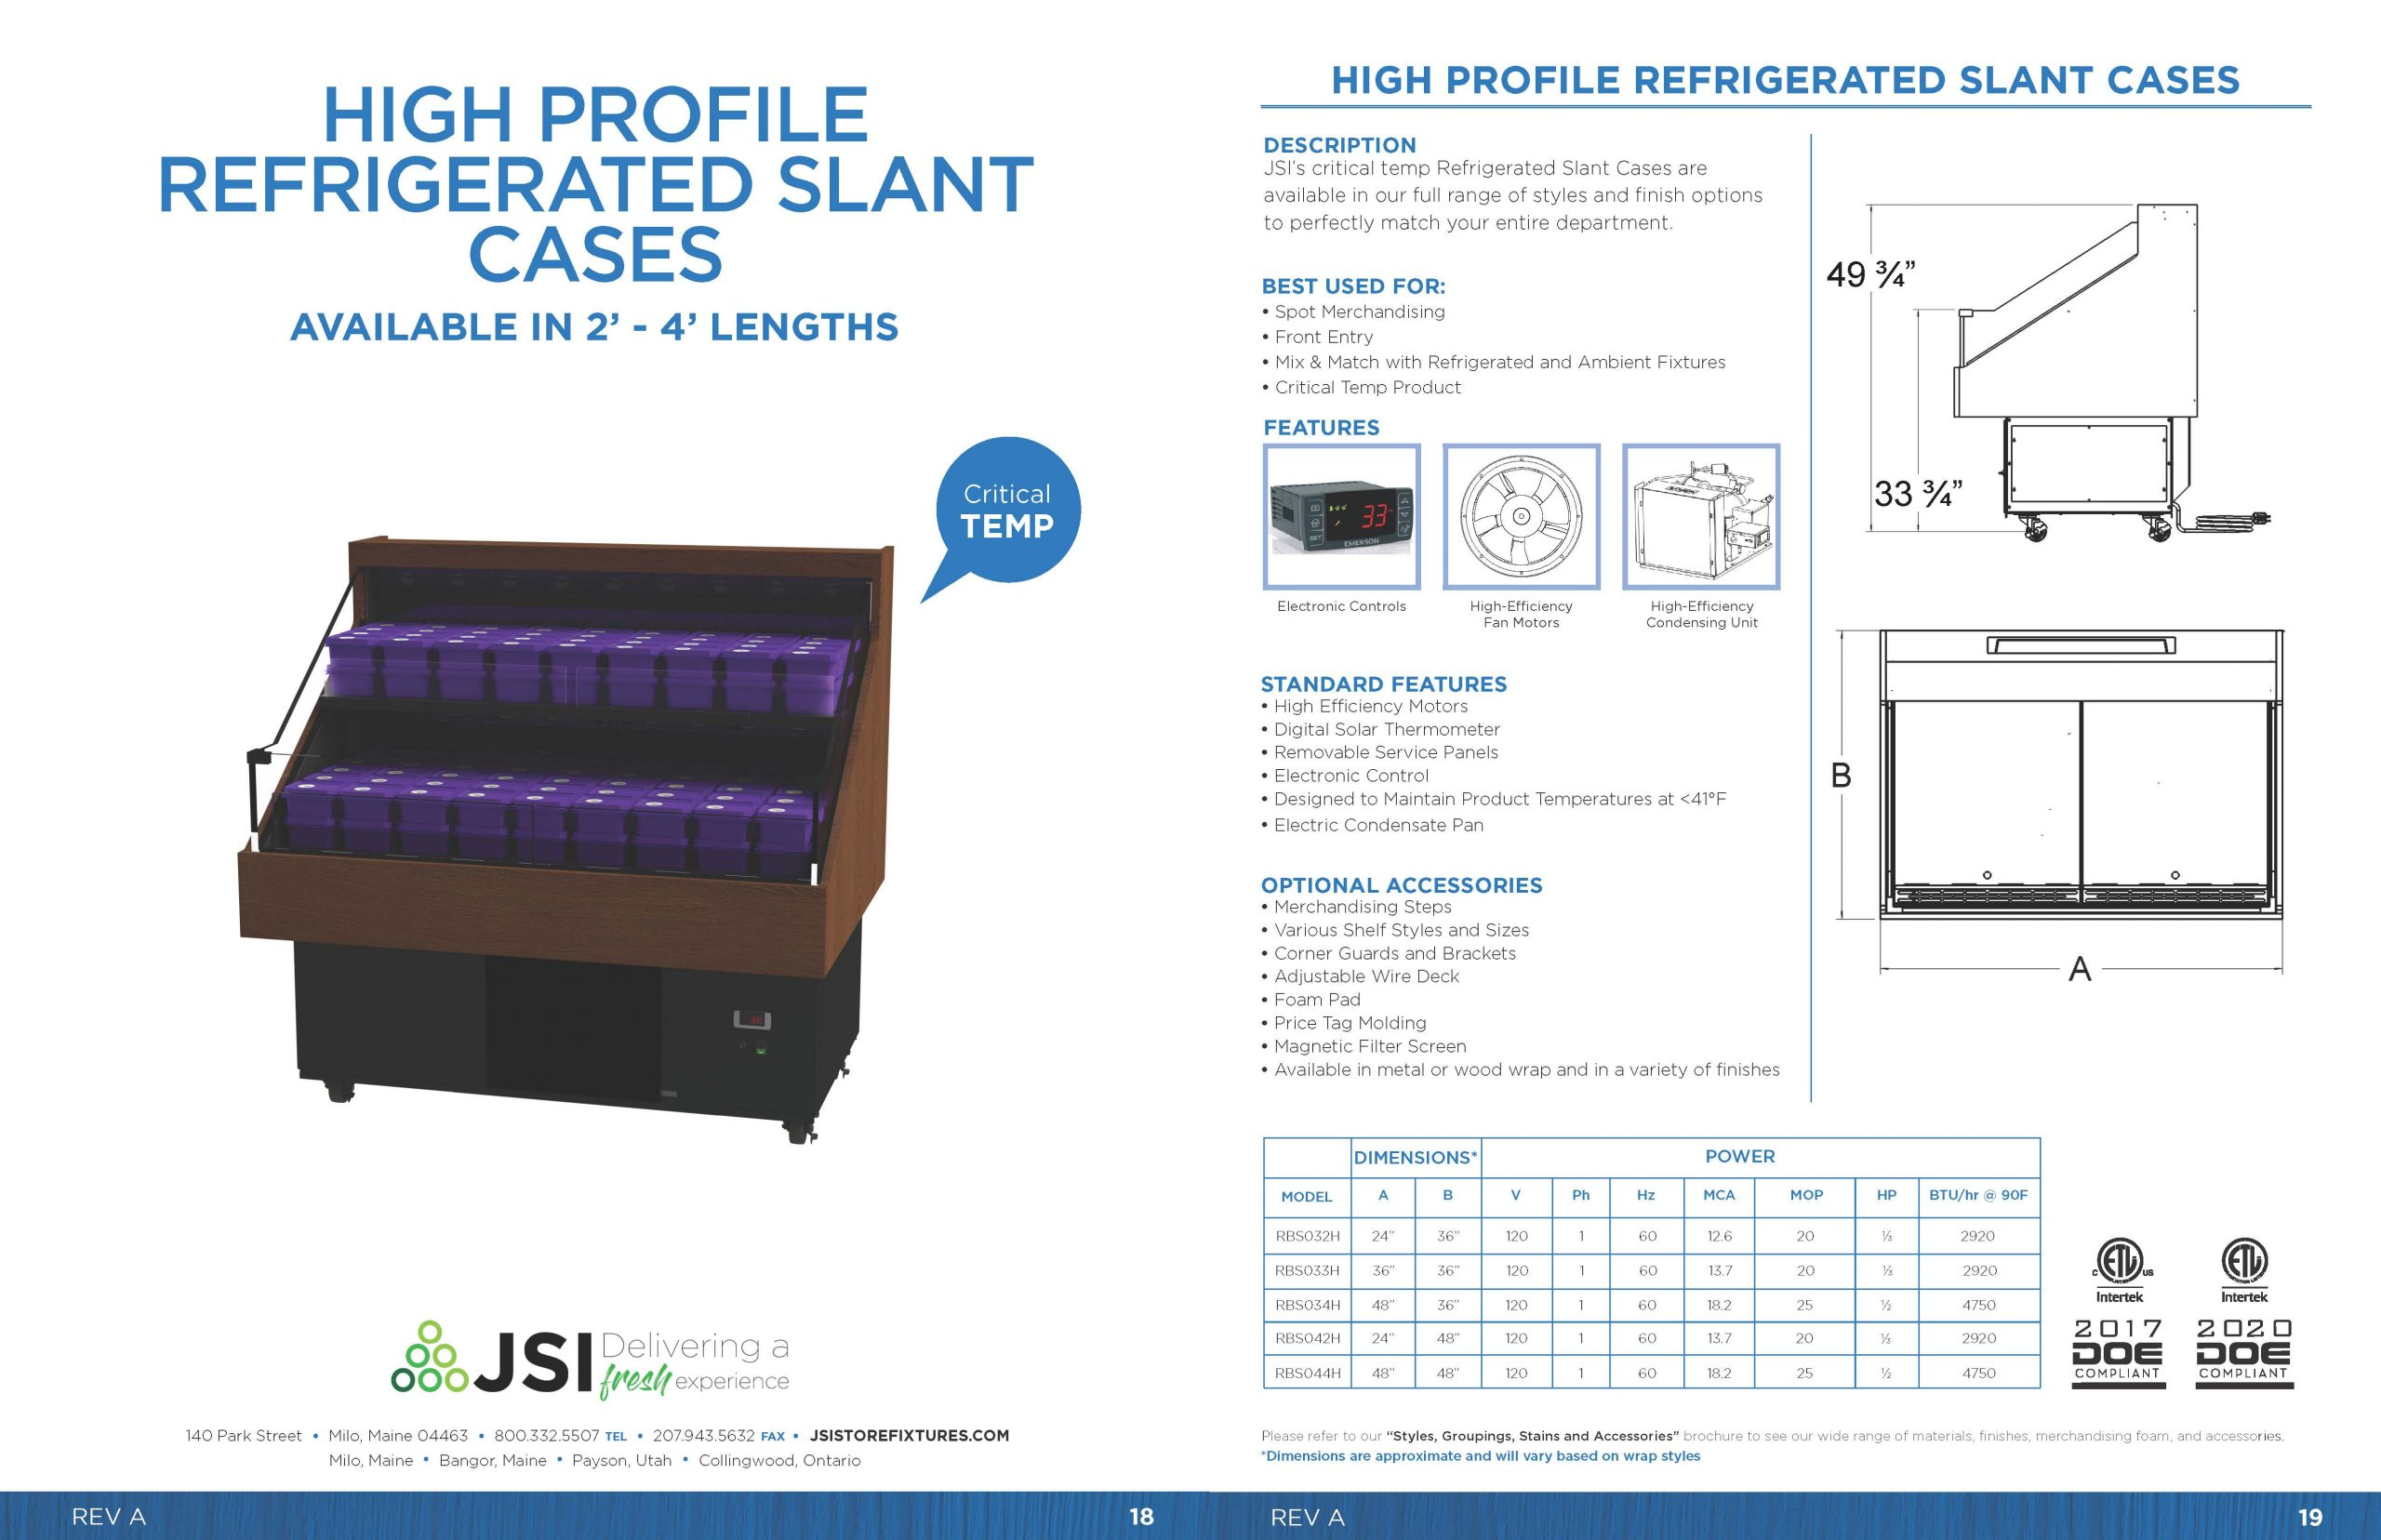 High Profile Refrigerated Slant Cases